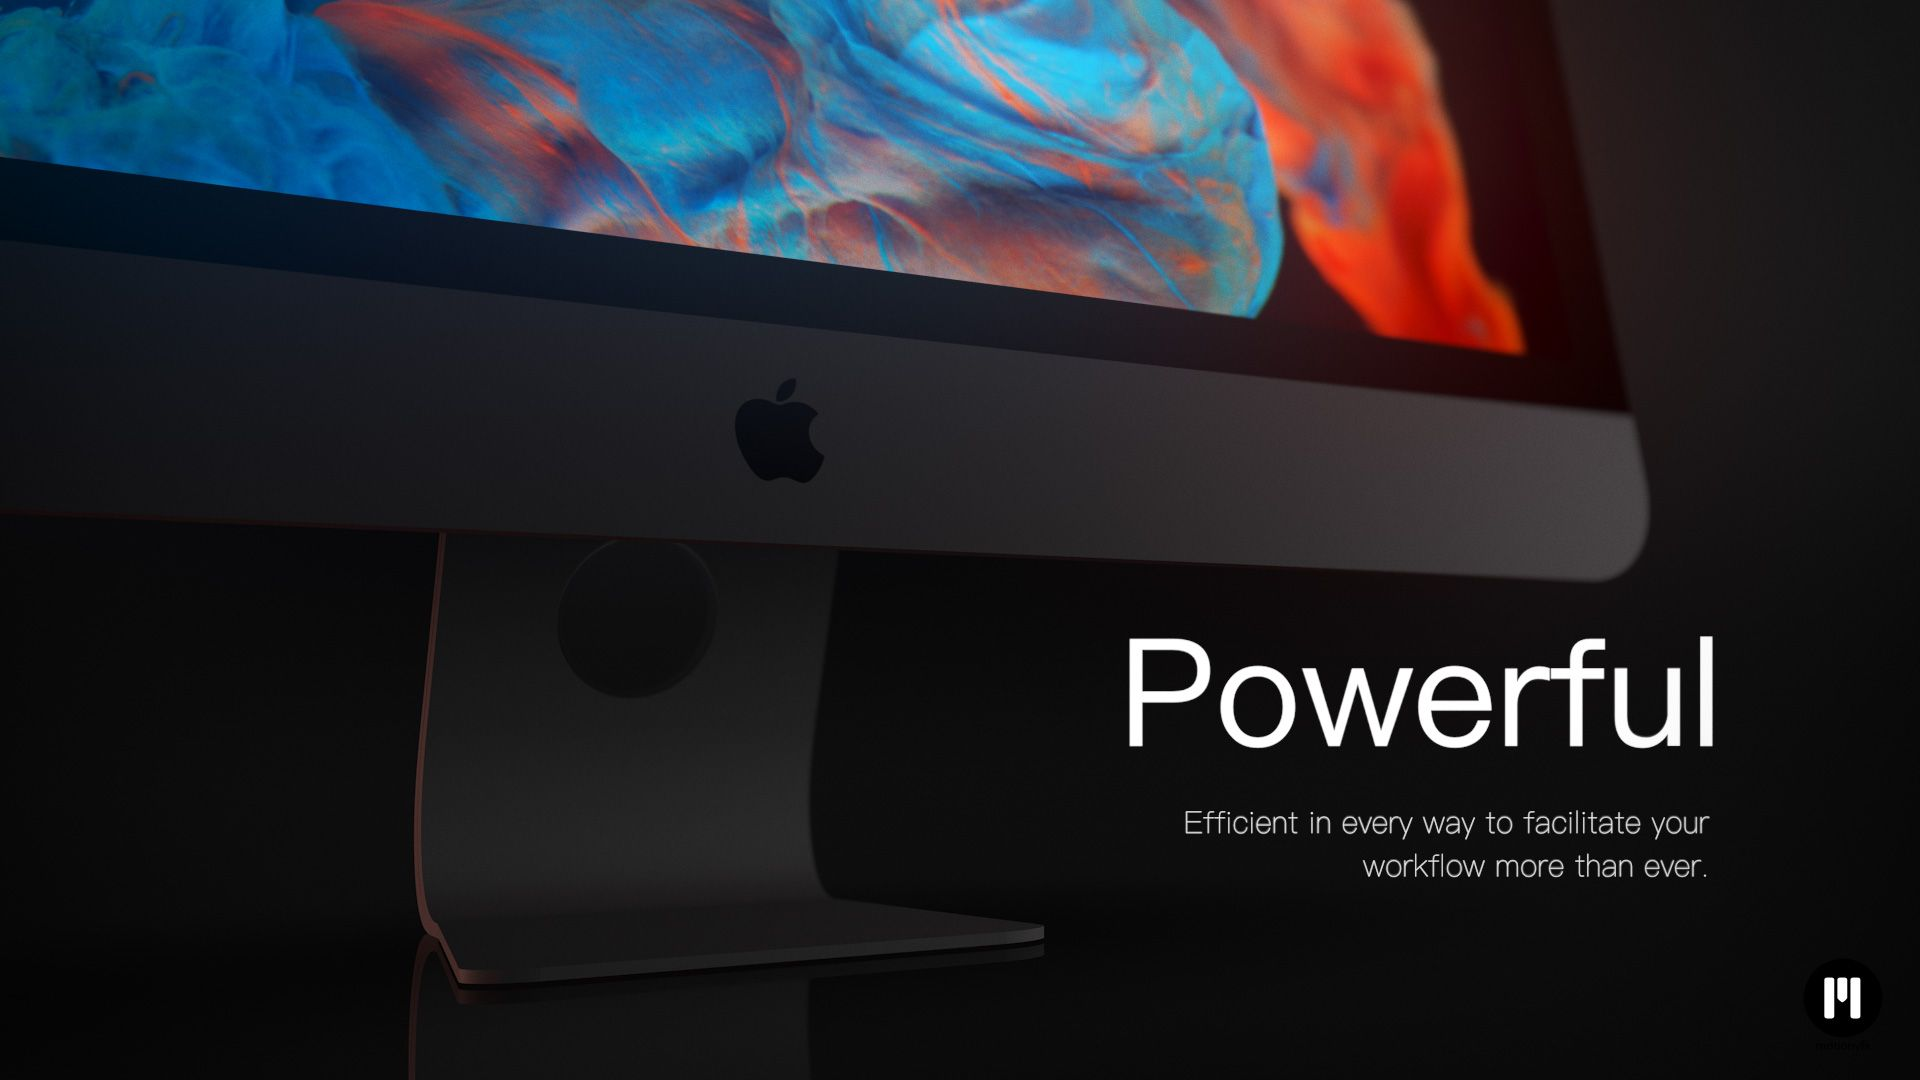 iMac Pro Apple Motion / FCPX Template available now! - www